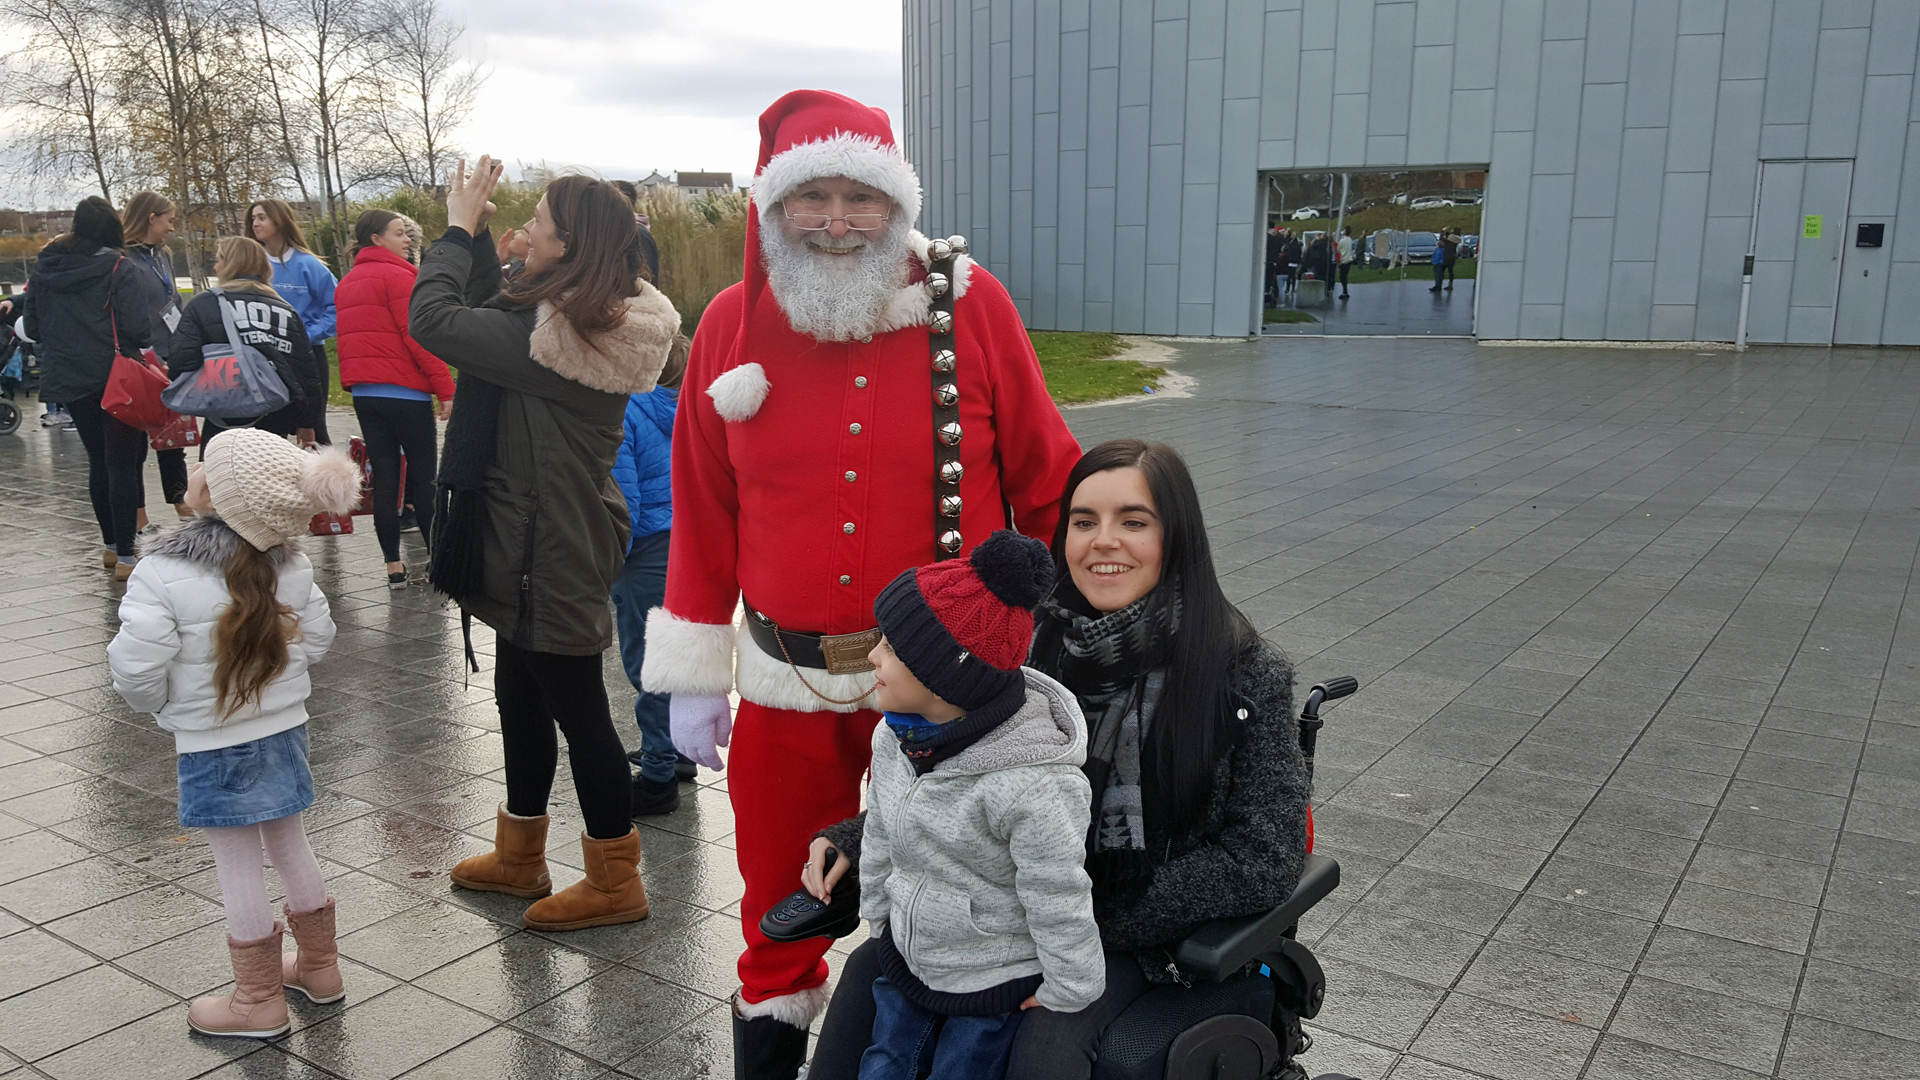 Emma and her nephew meet Santa Claus at Riverside Museum in Glasgow